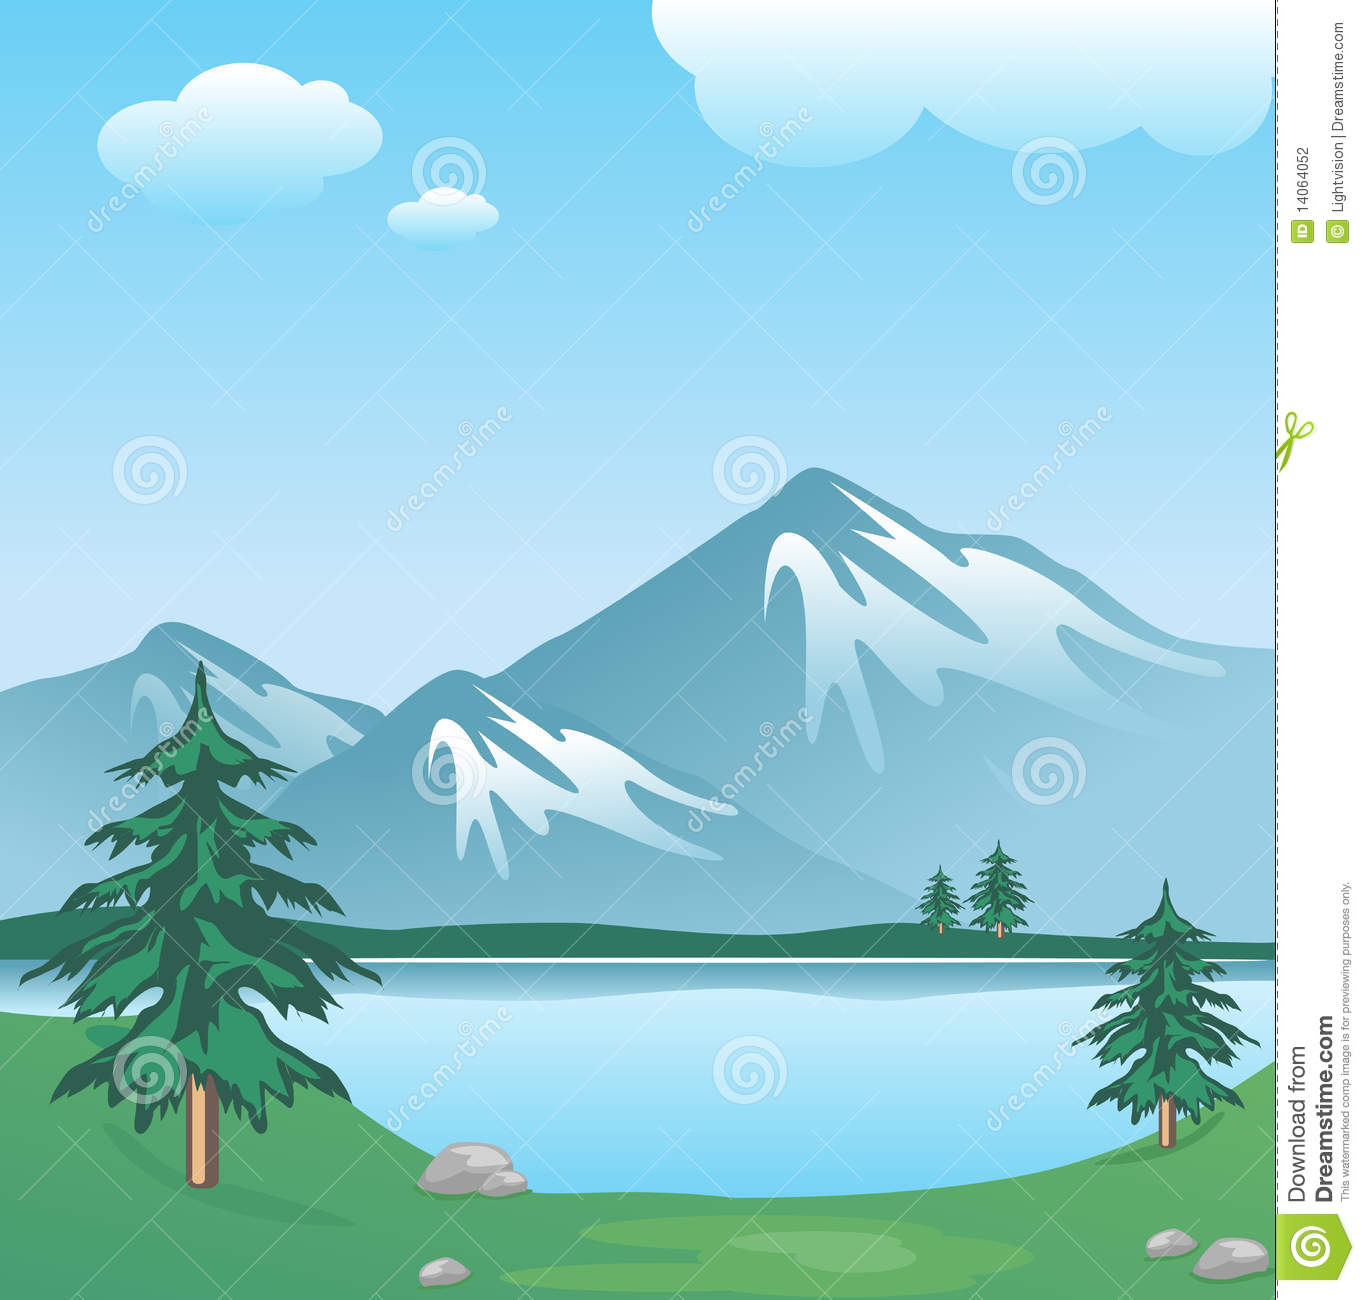 Lake Clipart Lake Trees And Grass In